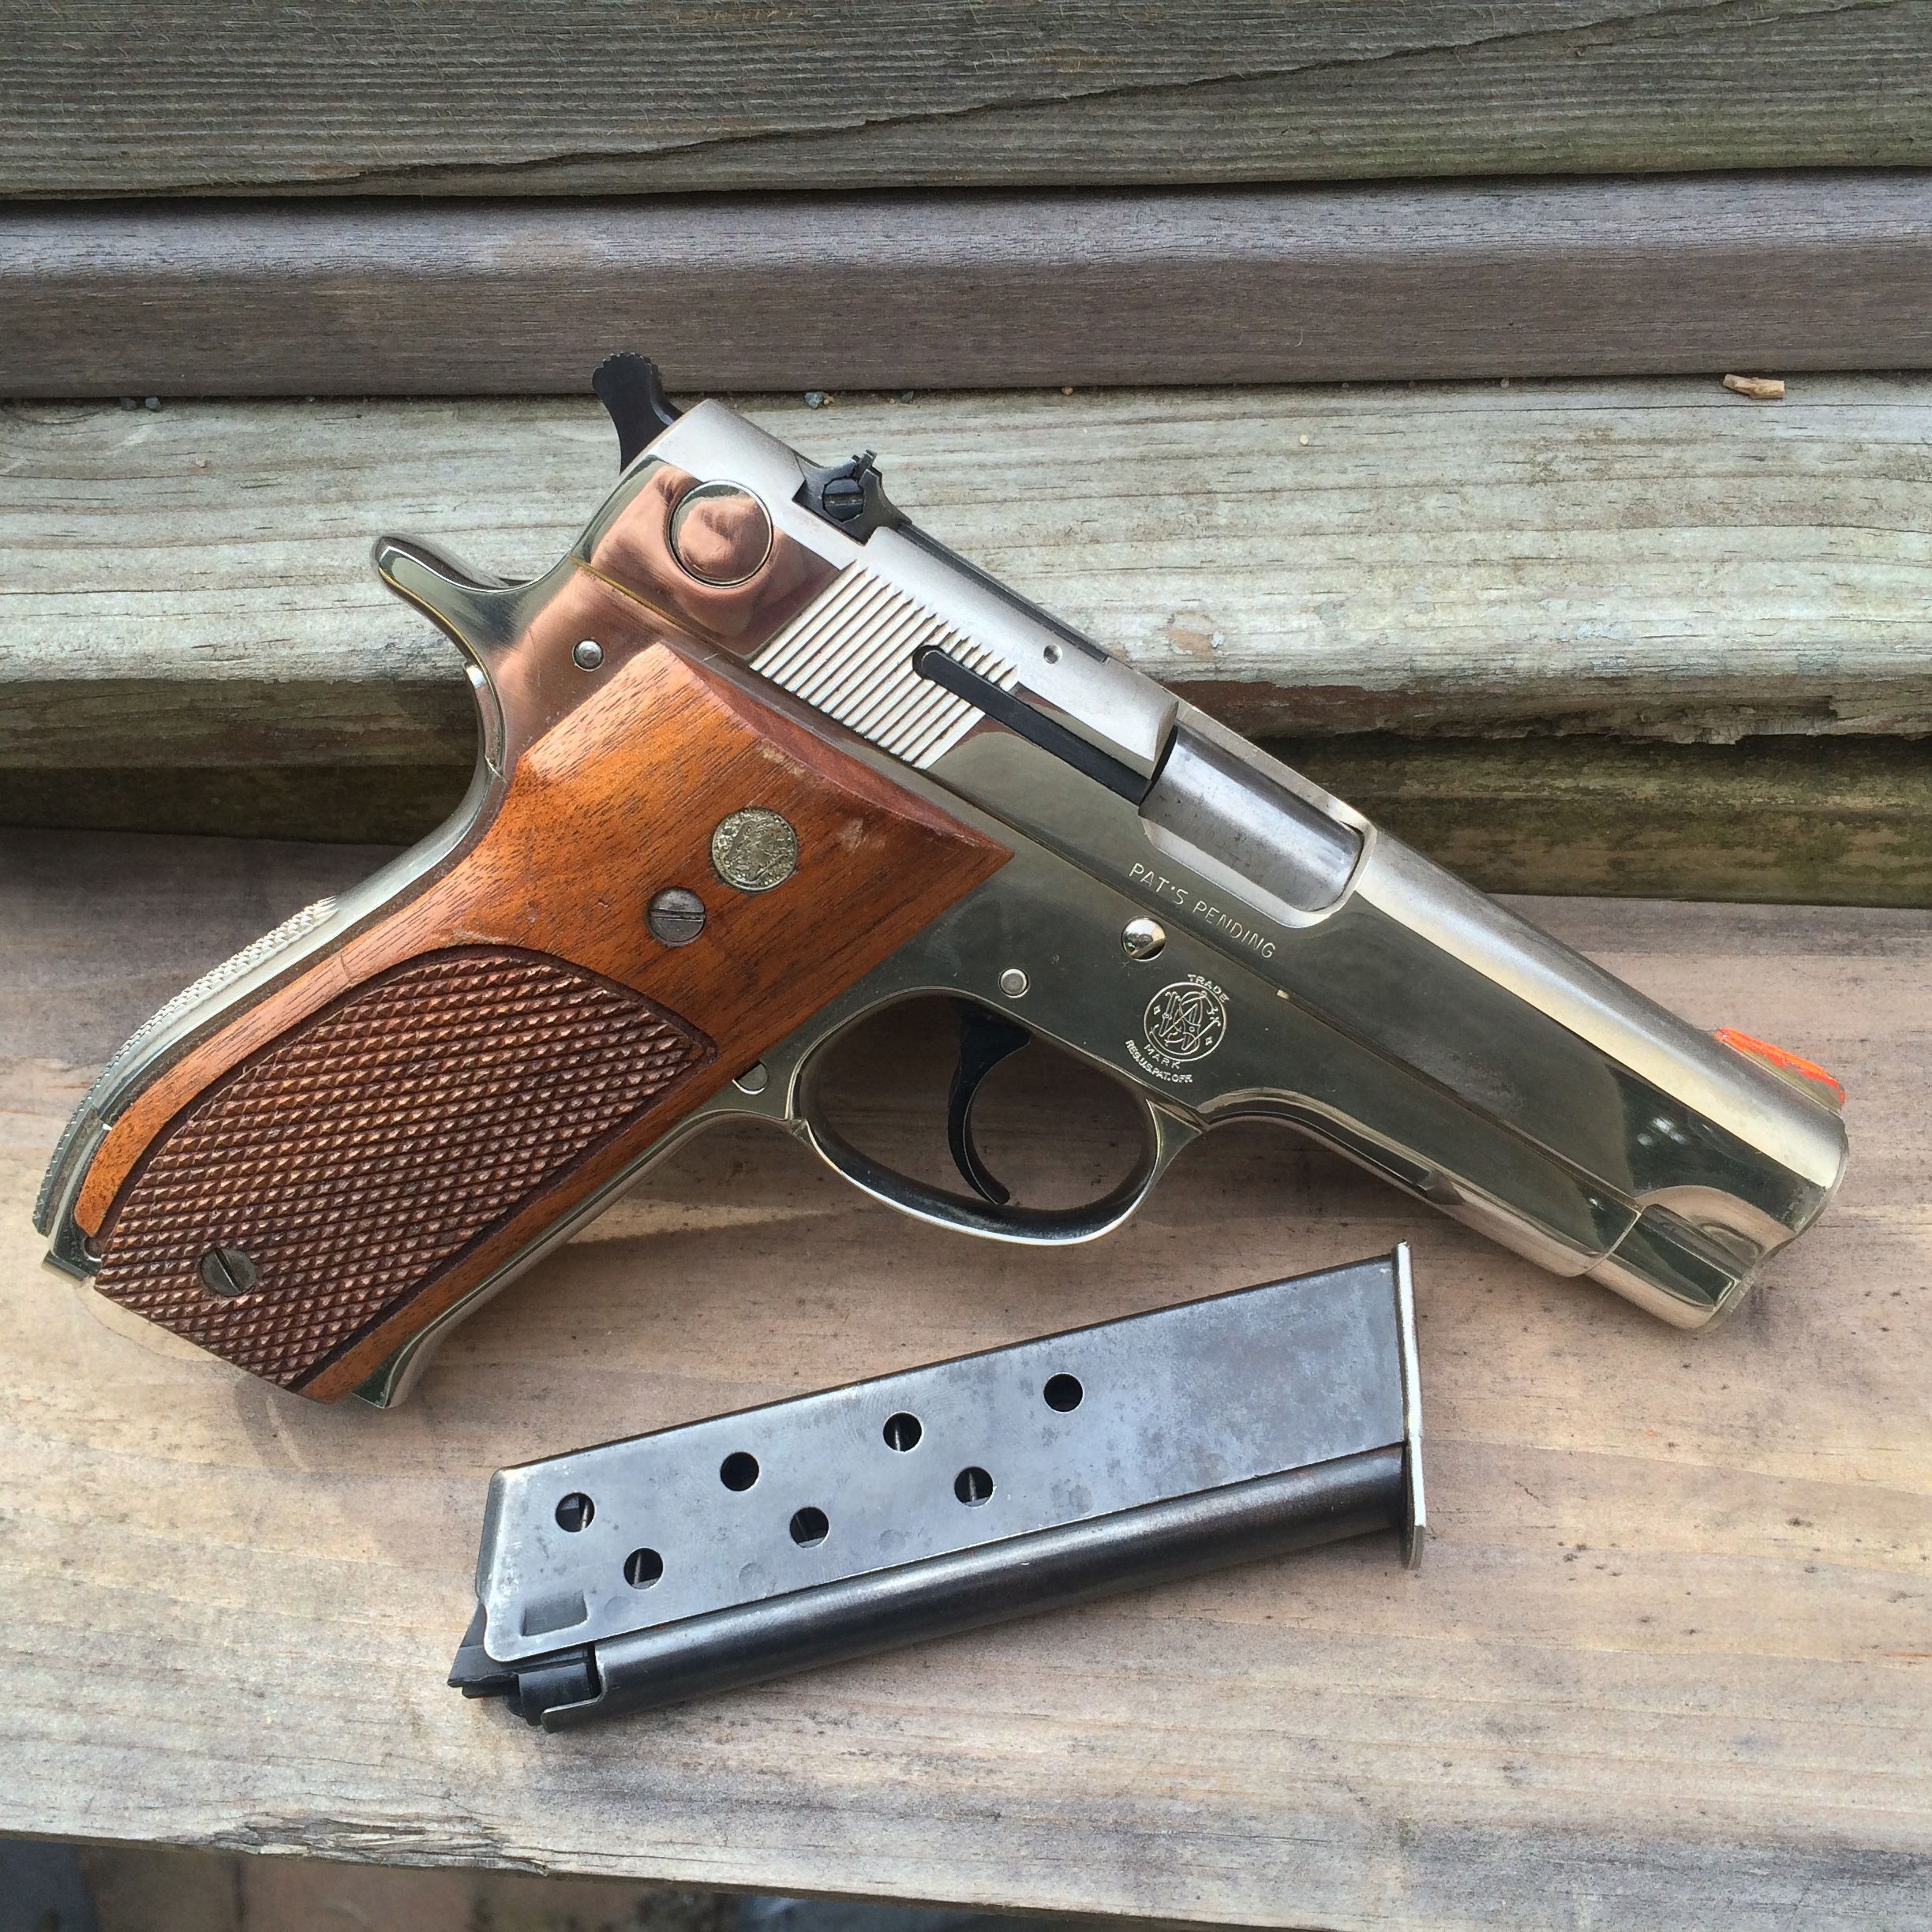 smith and wesson model 39 the gun that wanted to replace the 1911 rh rifleshooter com S&W Model 3 S&W Model 19 Combat Magnum